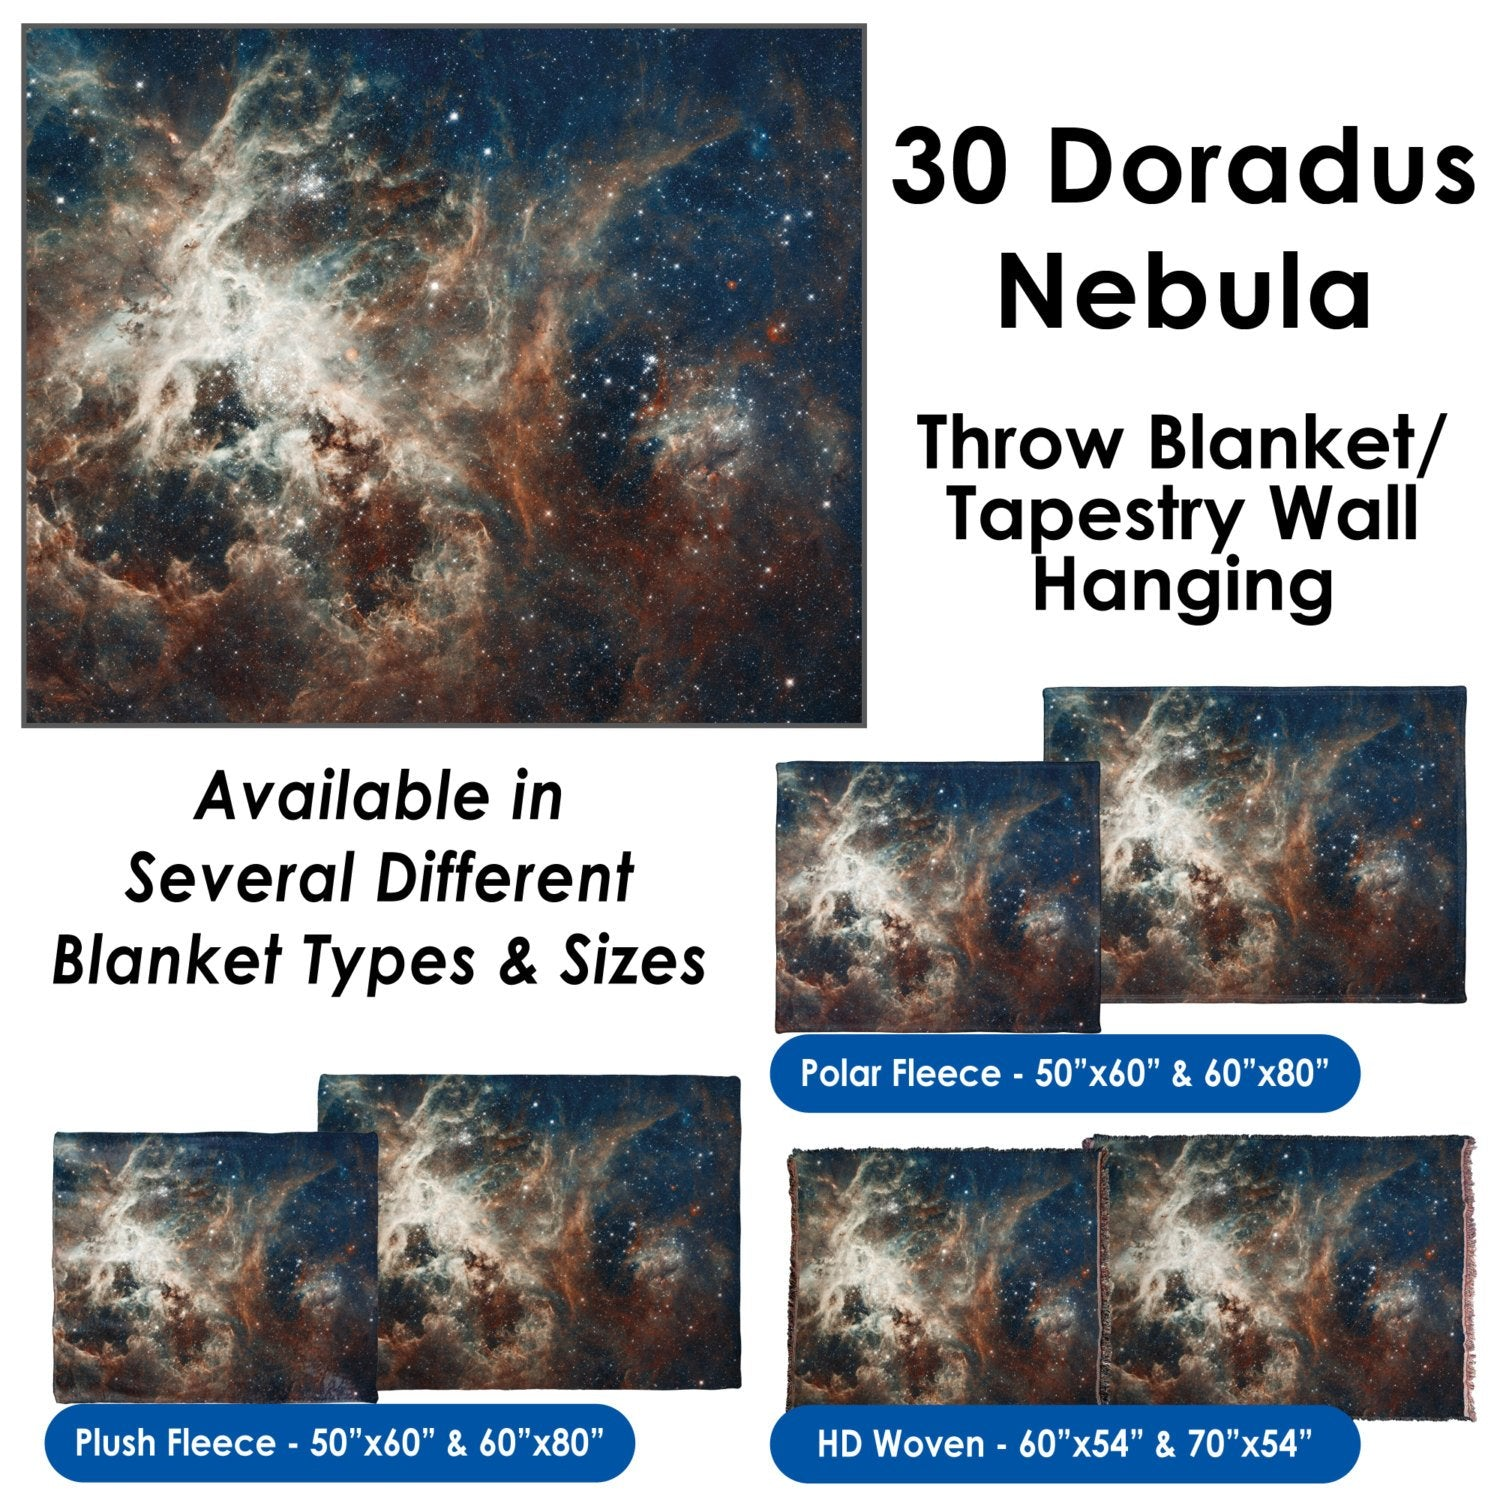 30 Doradus Nebula - Throw Blanket / Tapestry Wall Hanging